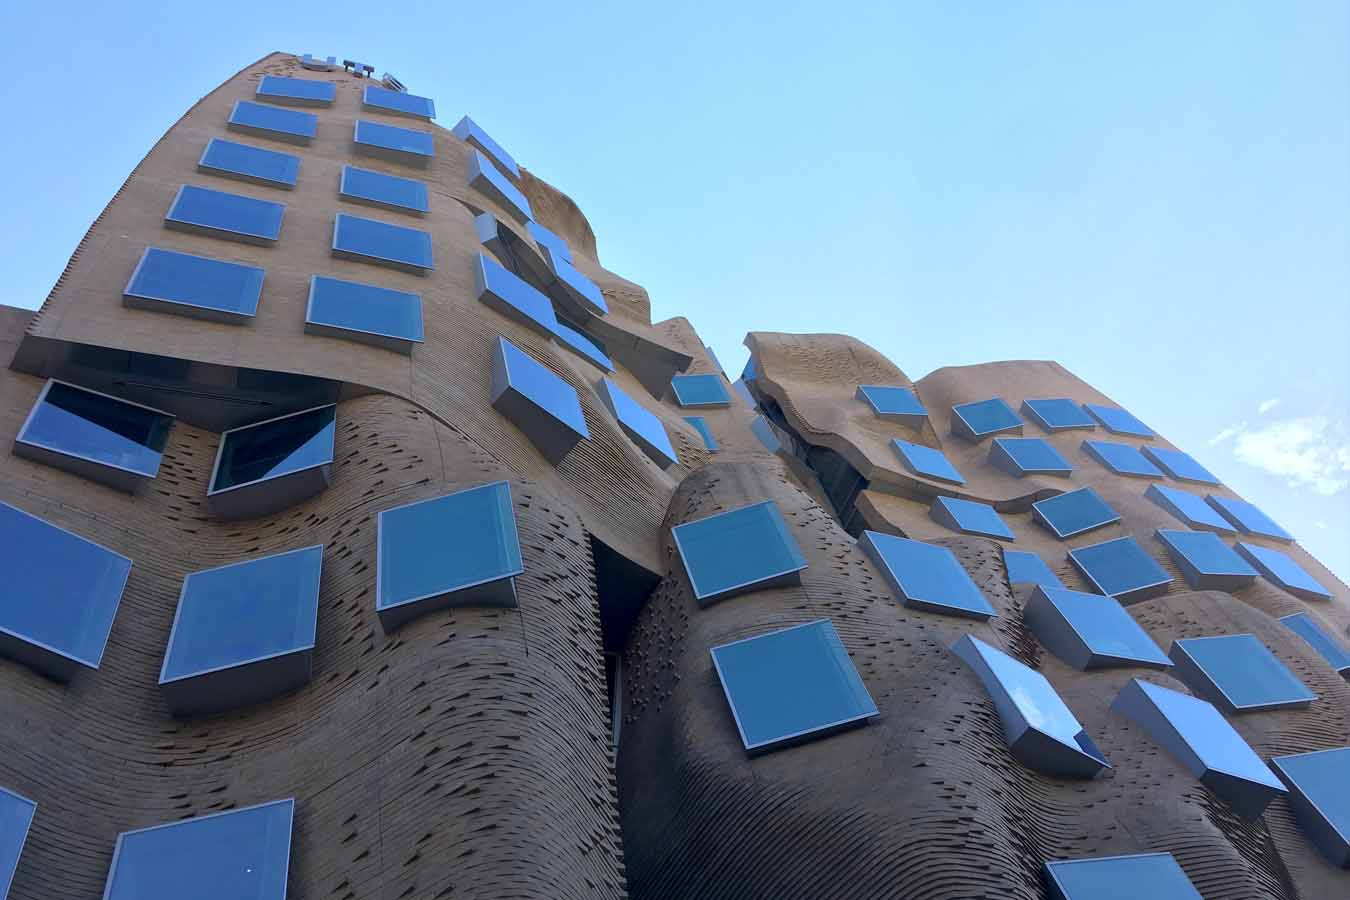 Archisoup-Frank-Gehry-buildings.jpg